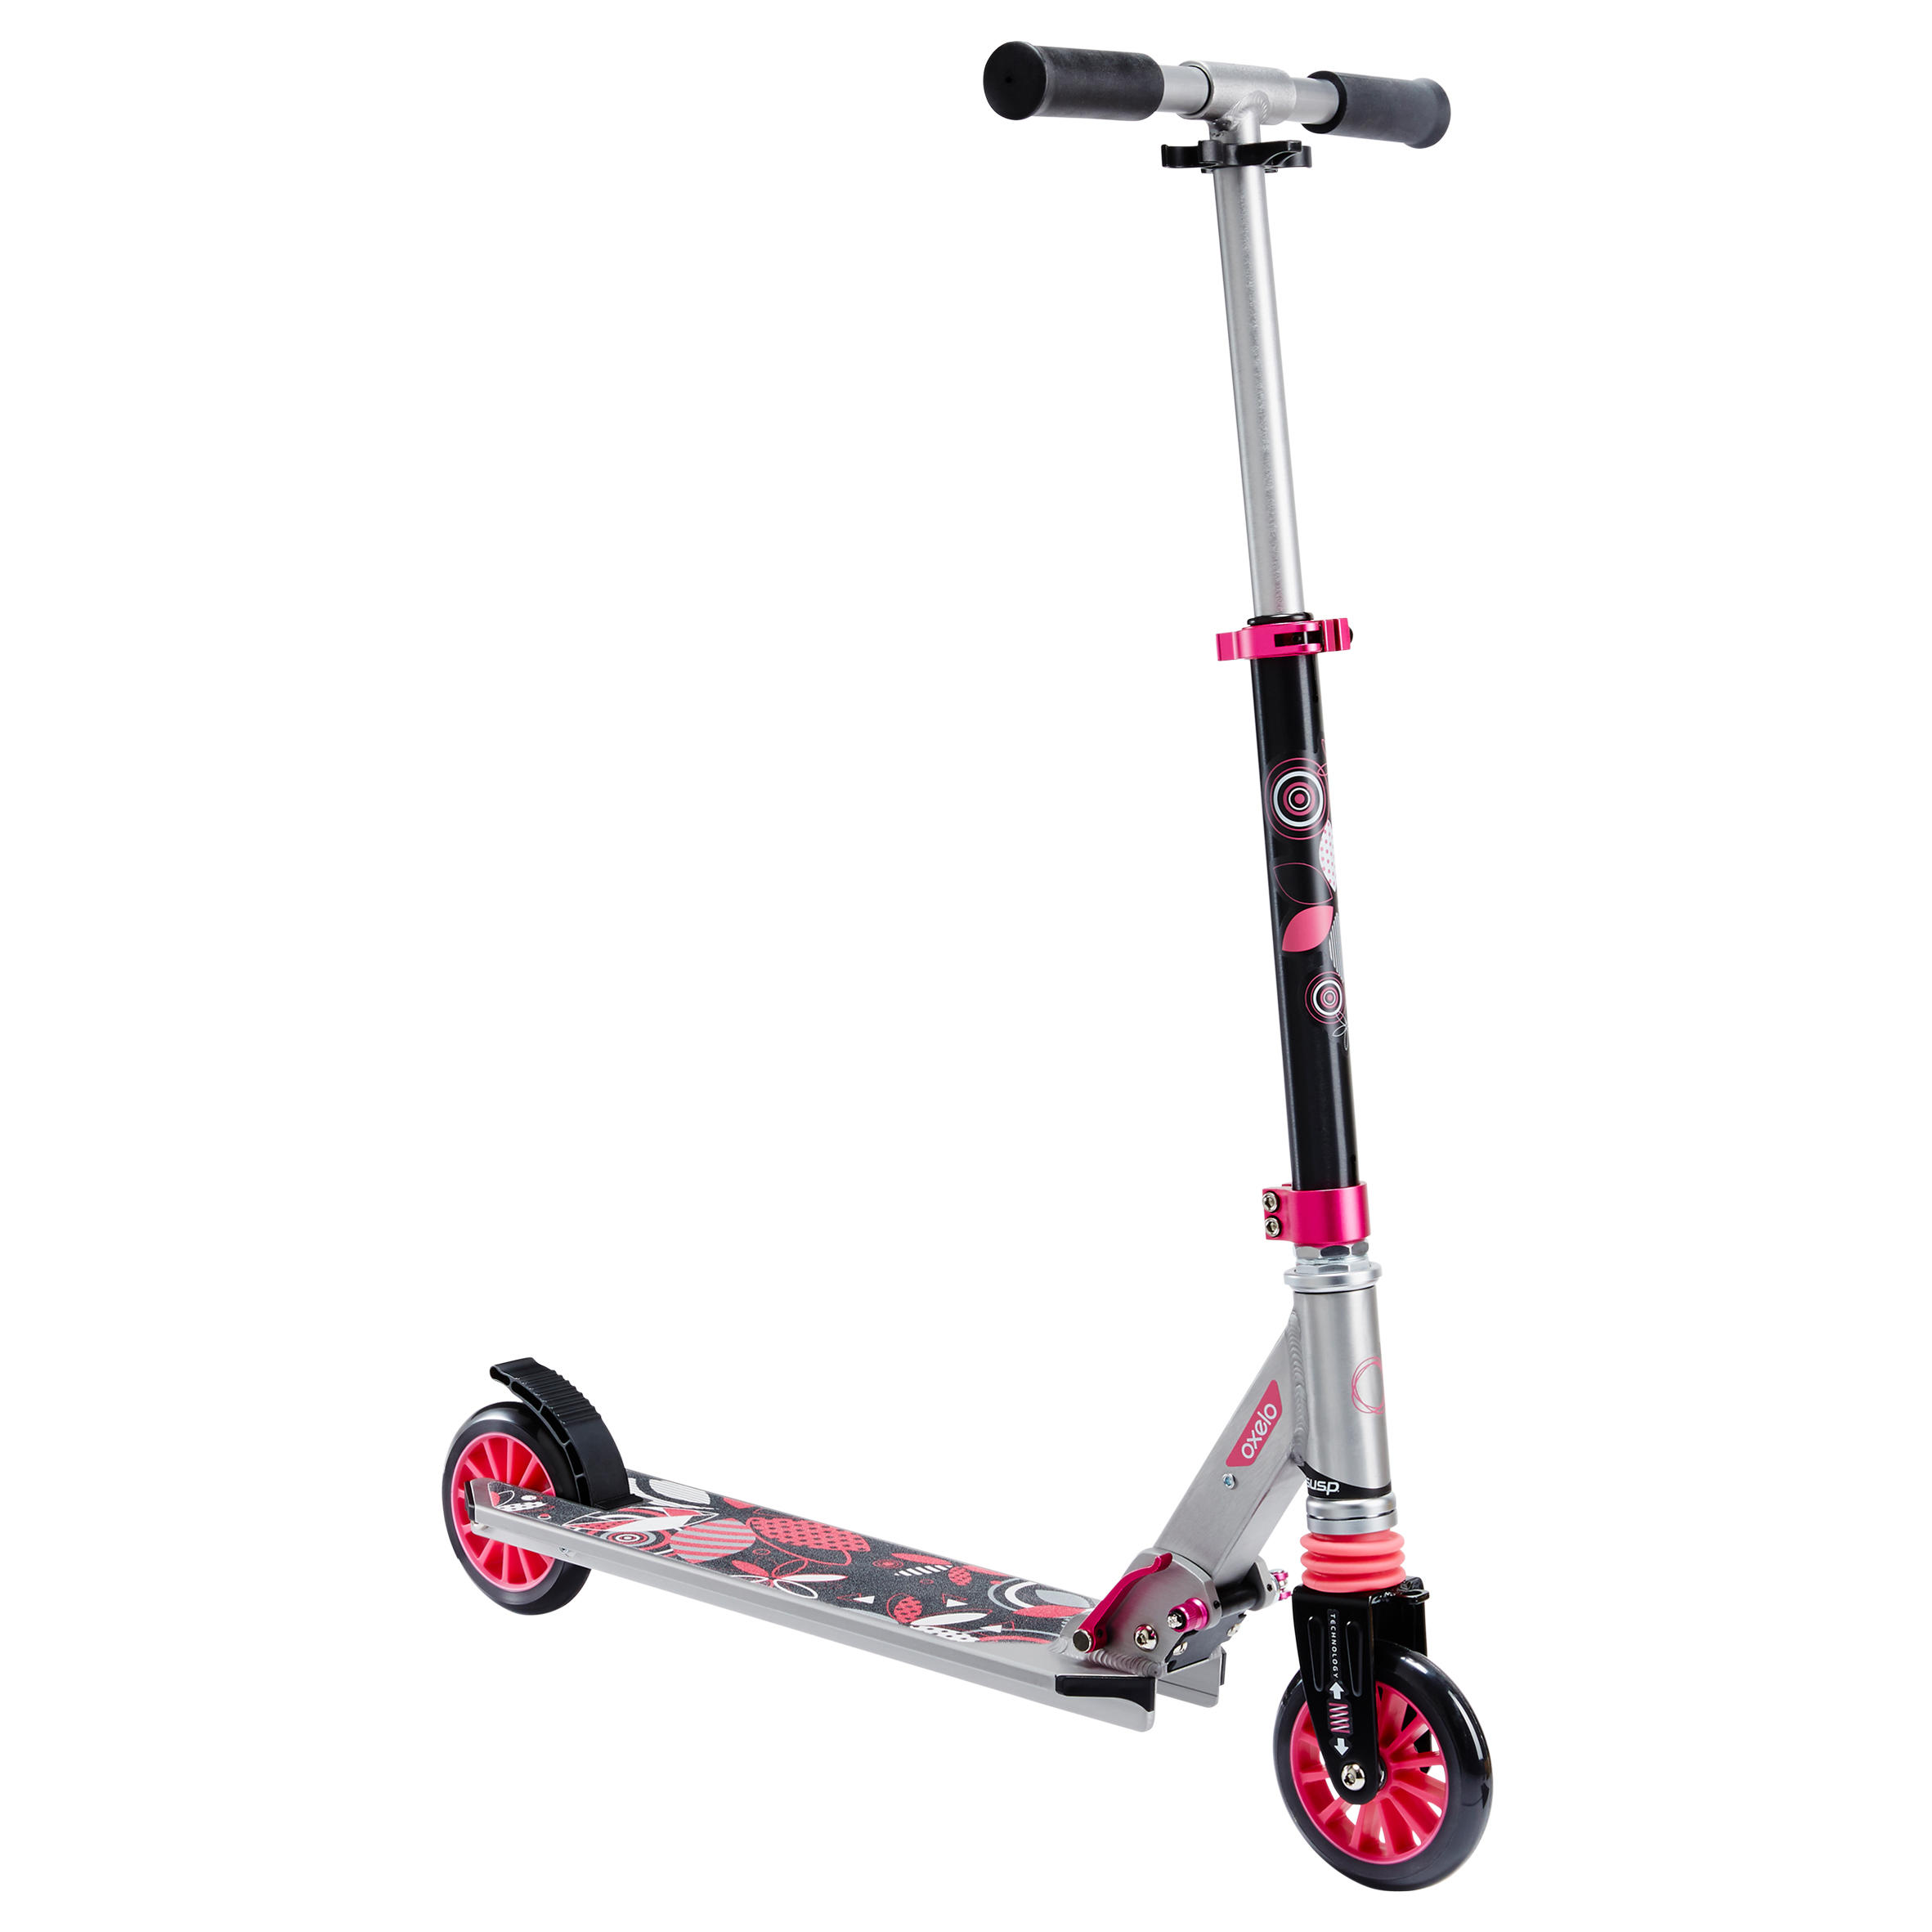 Mid 3 Kids' Scooter with Suspension - Grey/Pink